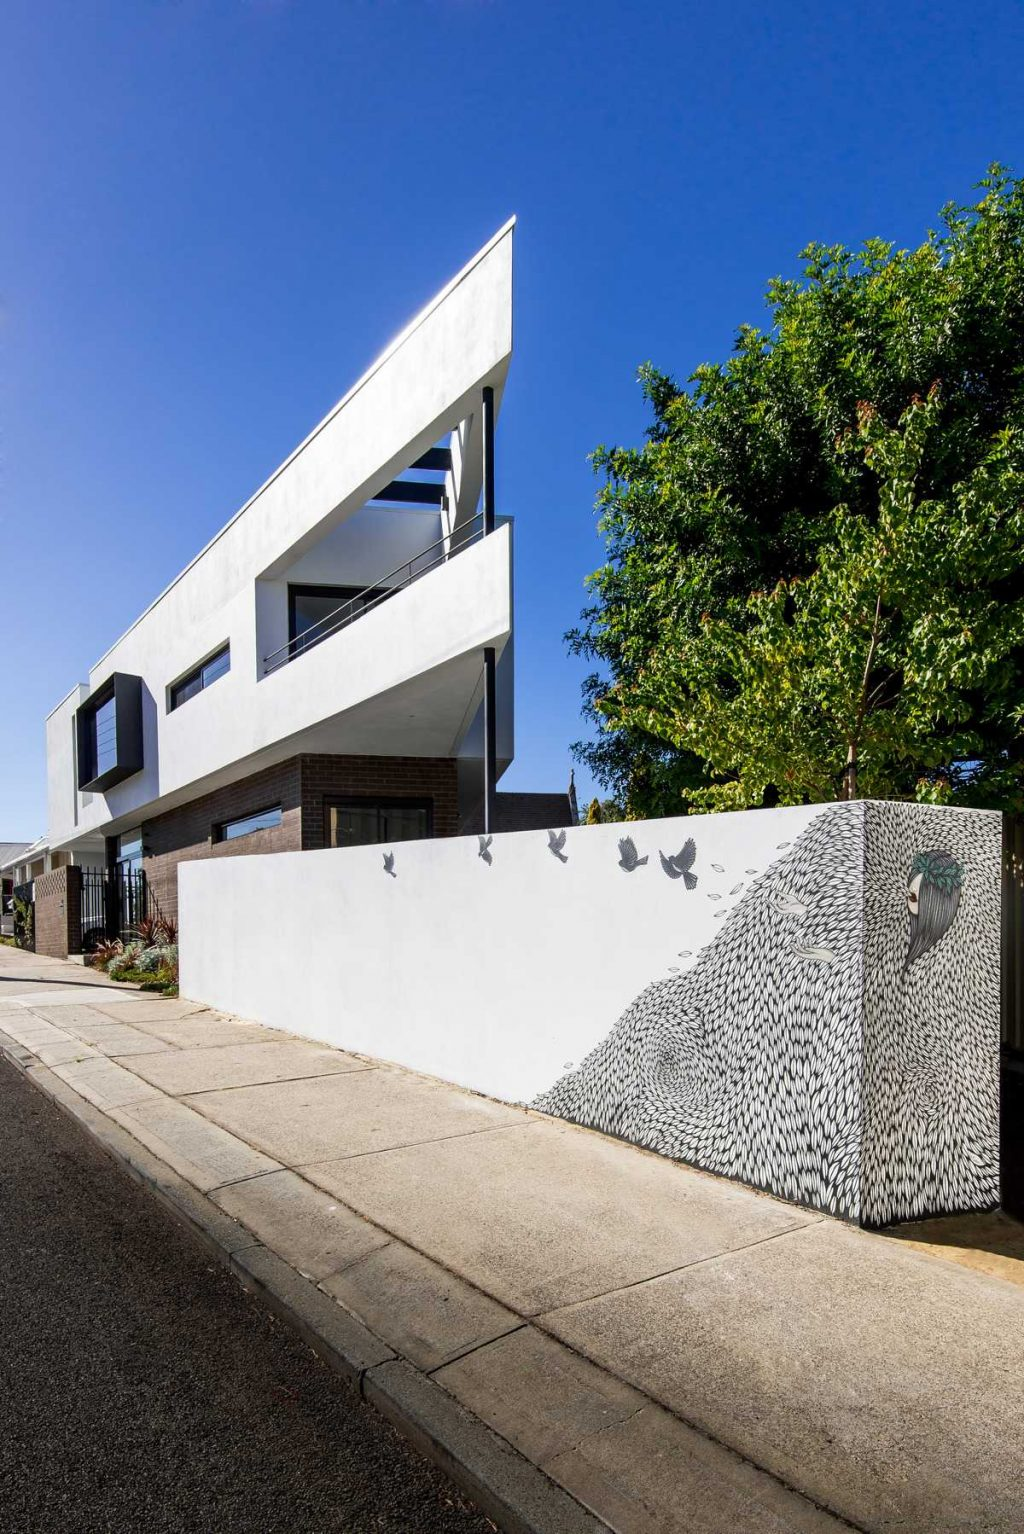 The Triangle House by Robeson Architects